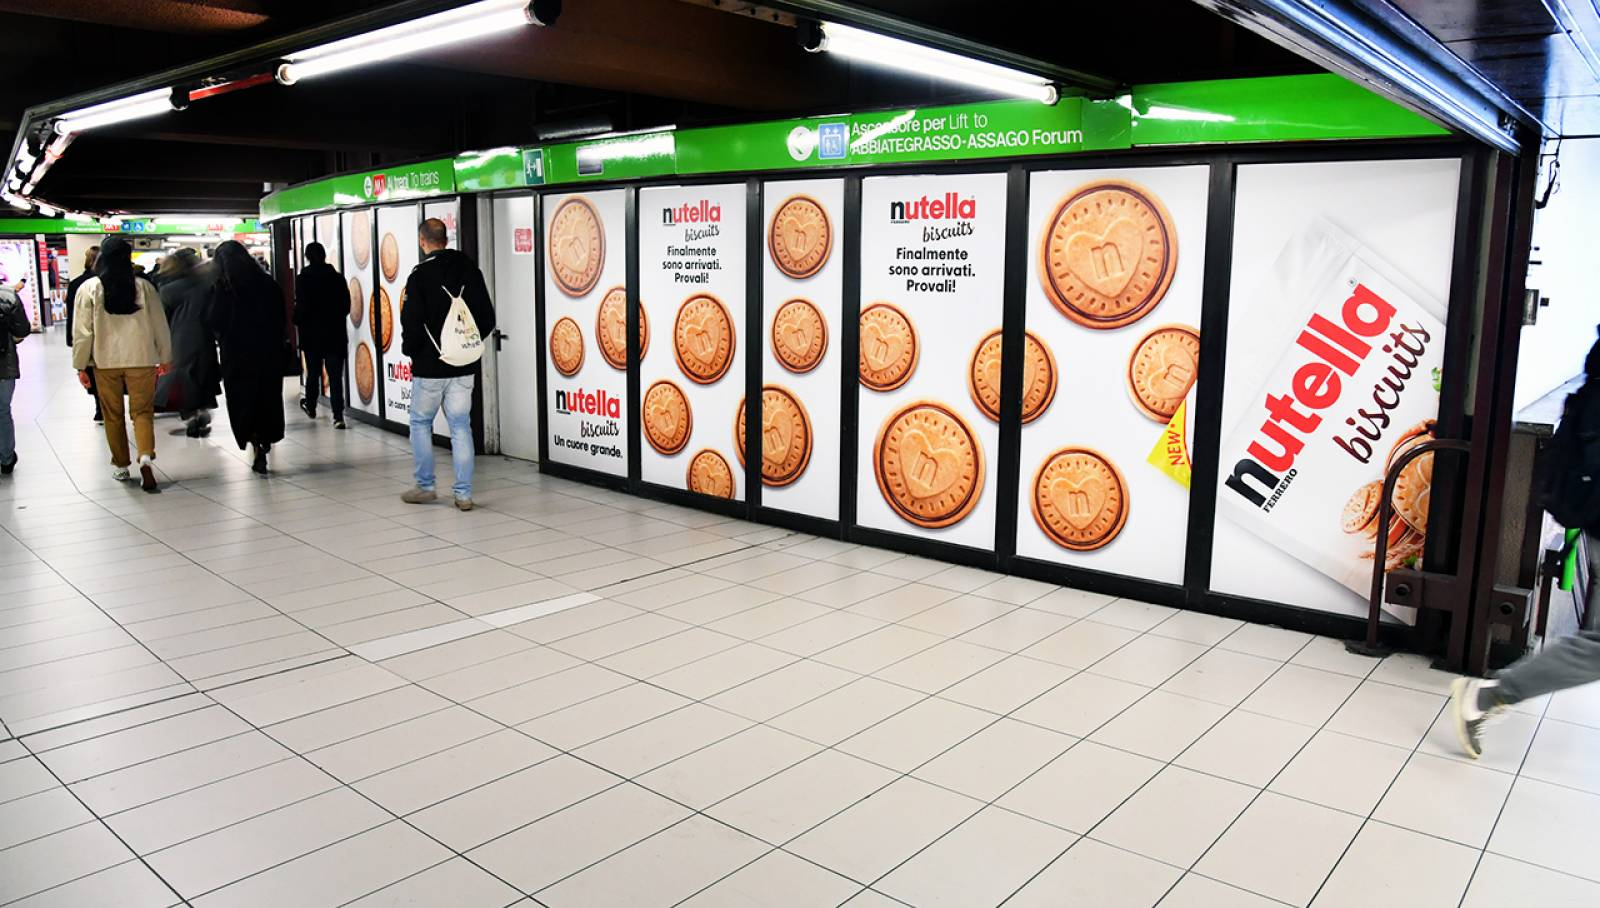 Outdoor advertising IGPDecaux in Milan Station Domination for Ferrero Nutella Biscuits